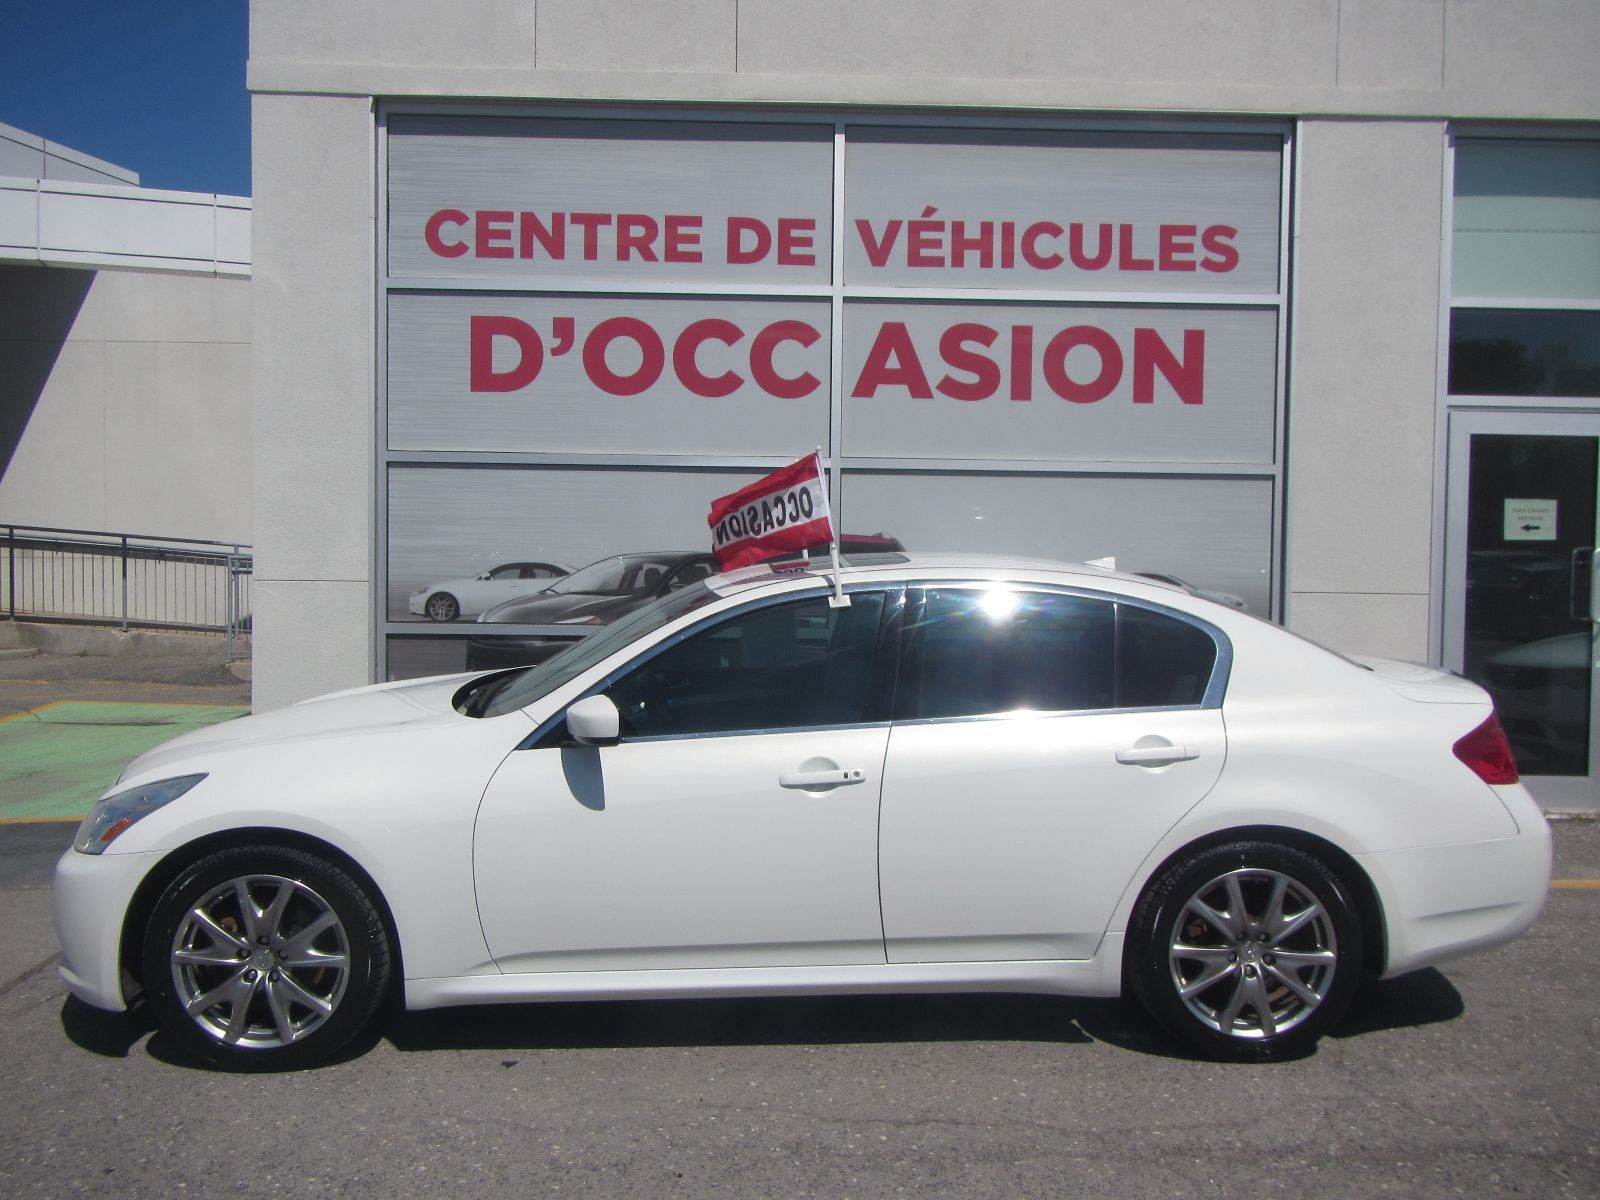 Used 2009 Infiniti G37 Sedan Xs In Montreal Laval And South Shore Remote Starter For M35 S0705